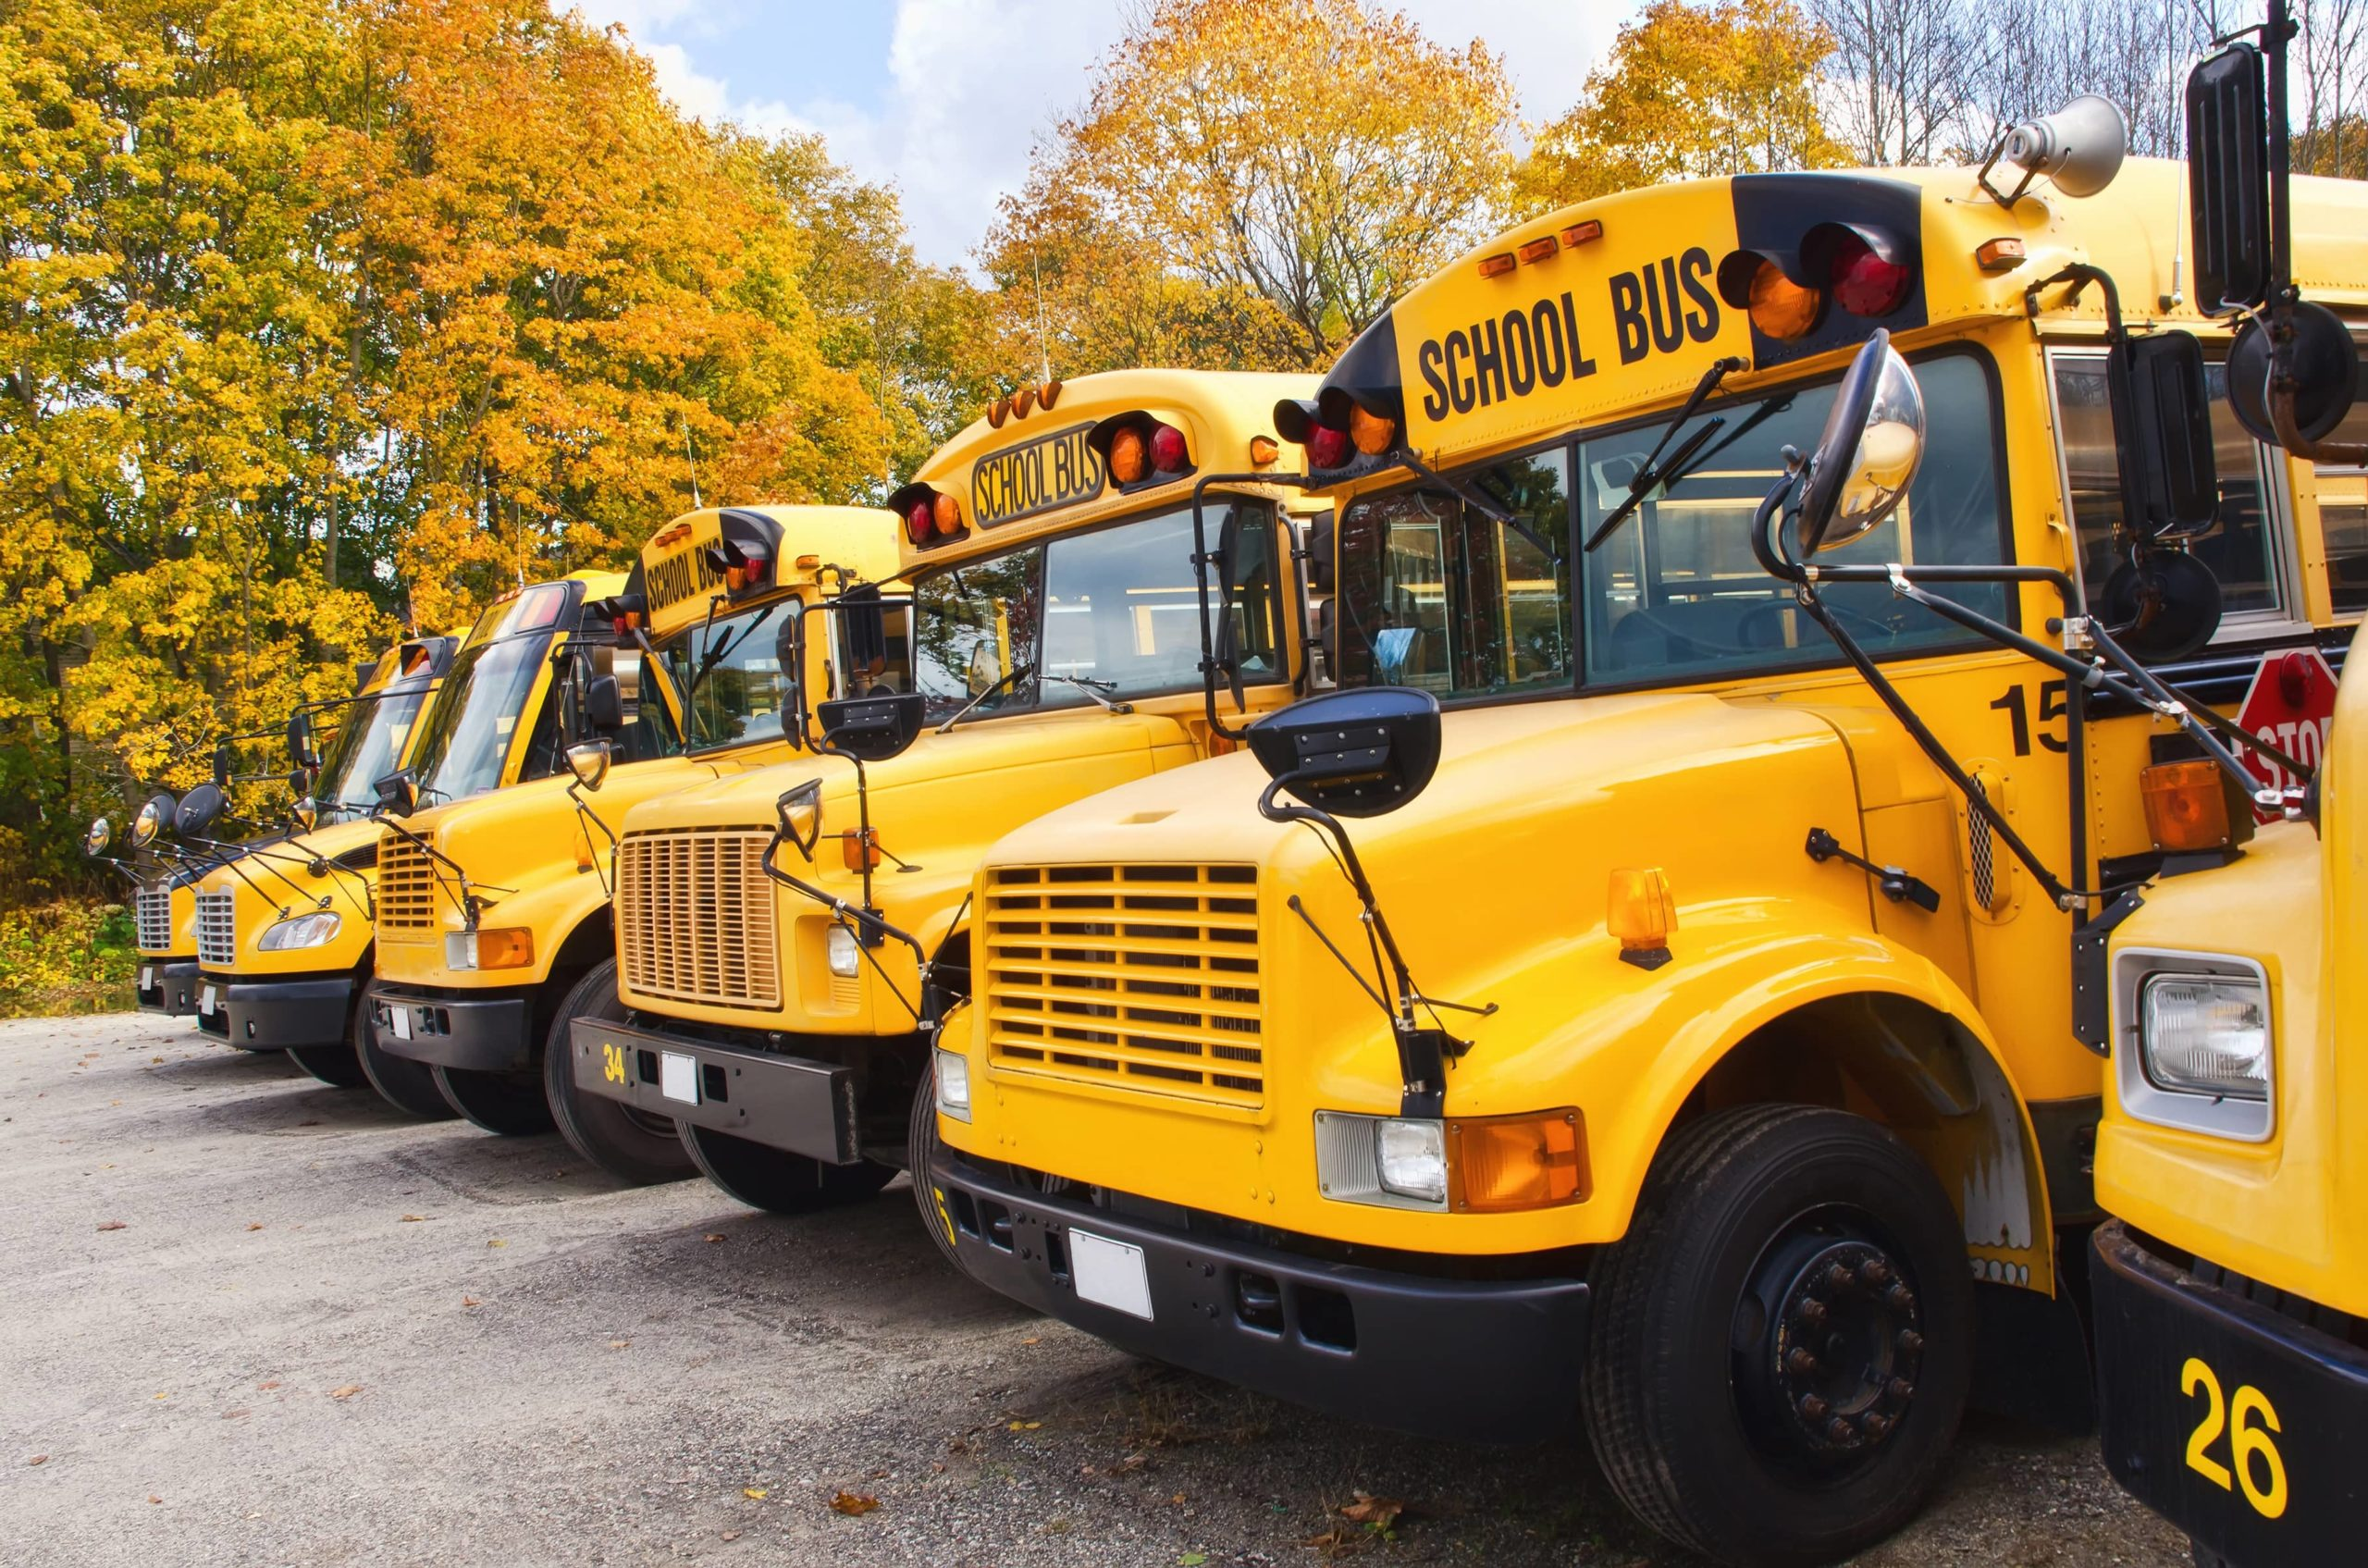 Deciding on a school bus charter rental is the first step.